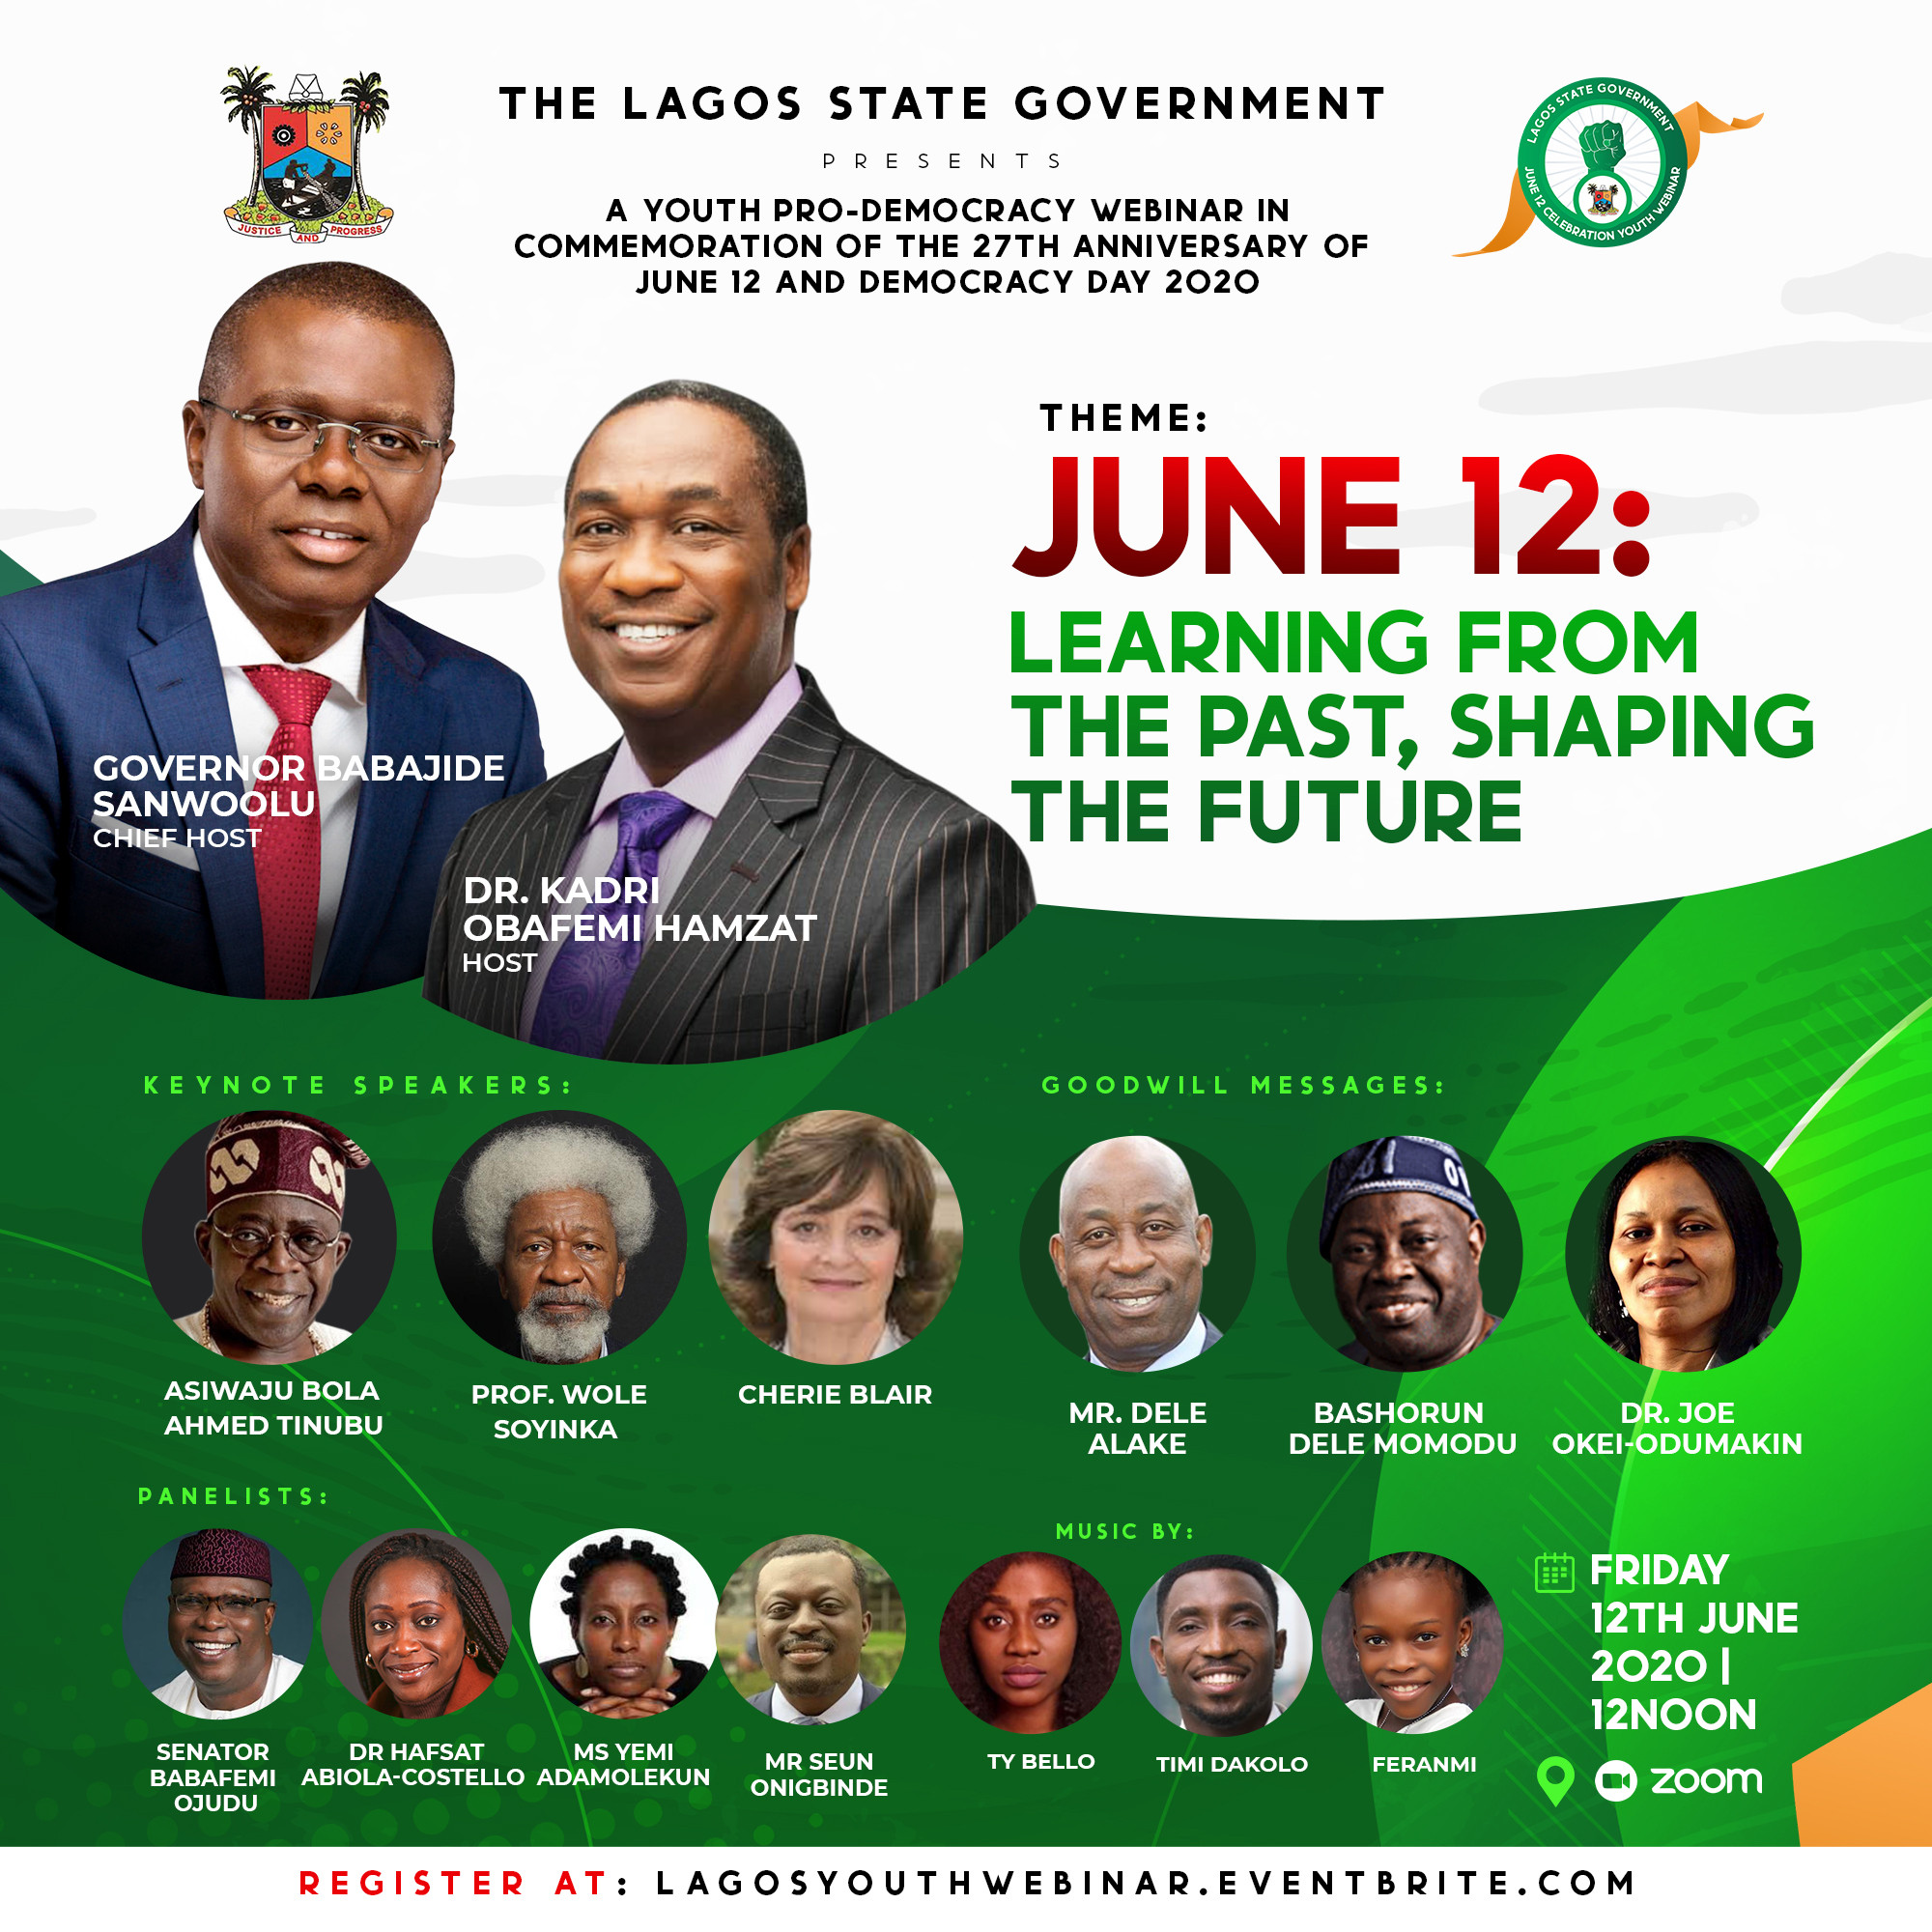 Invitation: Sanwoolu to host Tinubu, Soyinka, Cherie Blair, Momodu, Odumakin on June 12 Commemoration Webinar for Lagos Youth